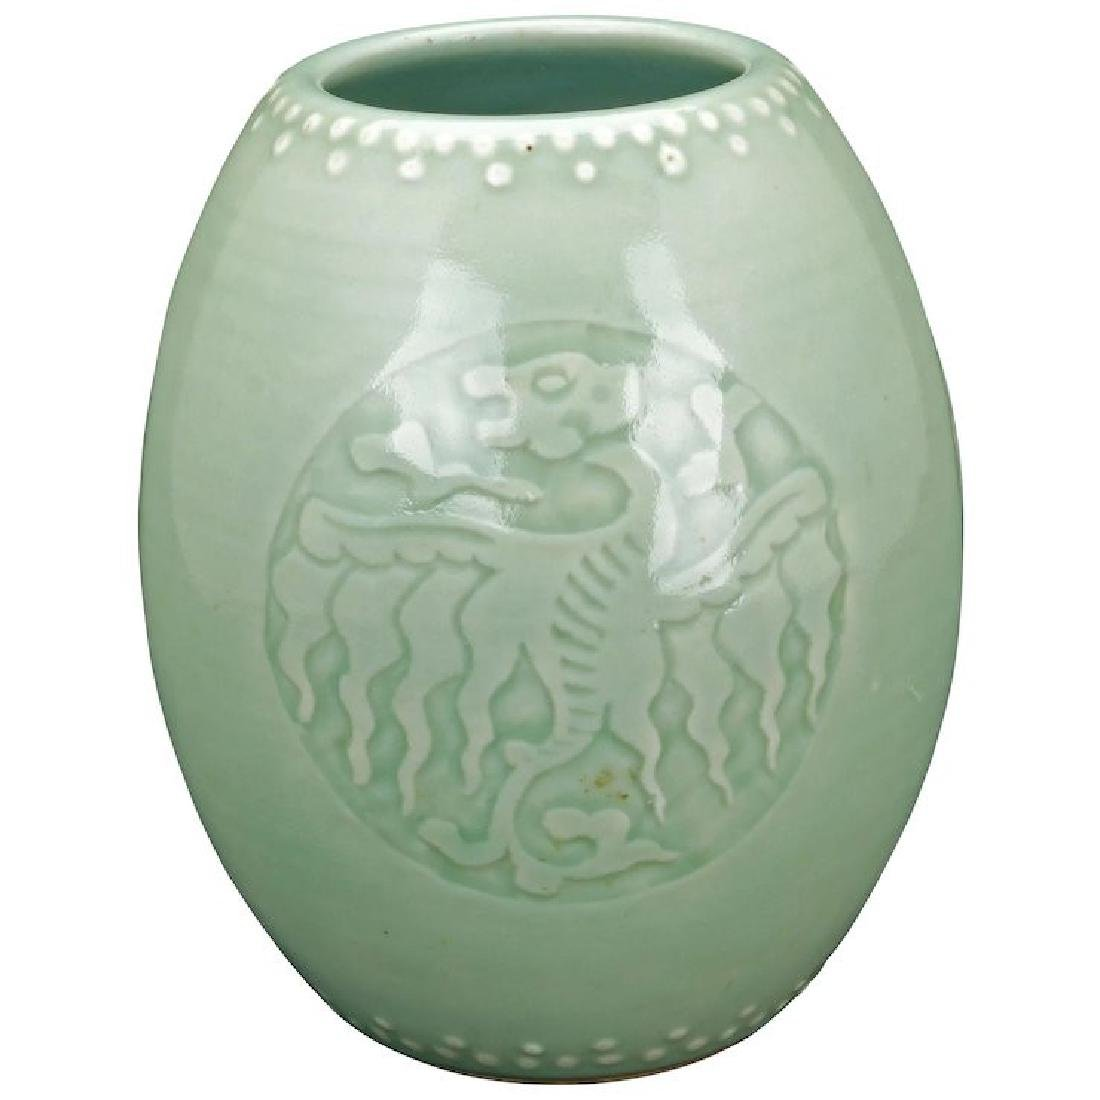 Chinese porcelain celadon glazed drum vase with a